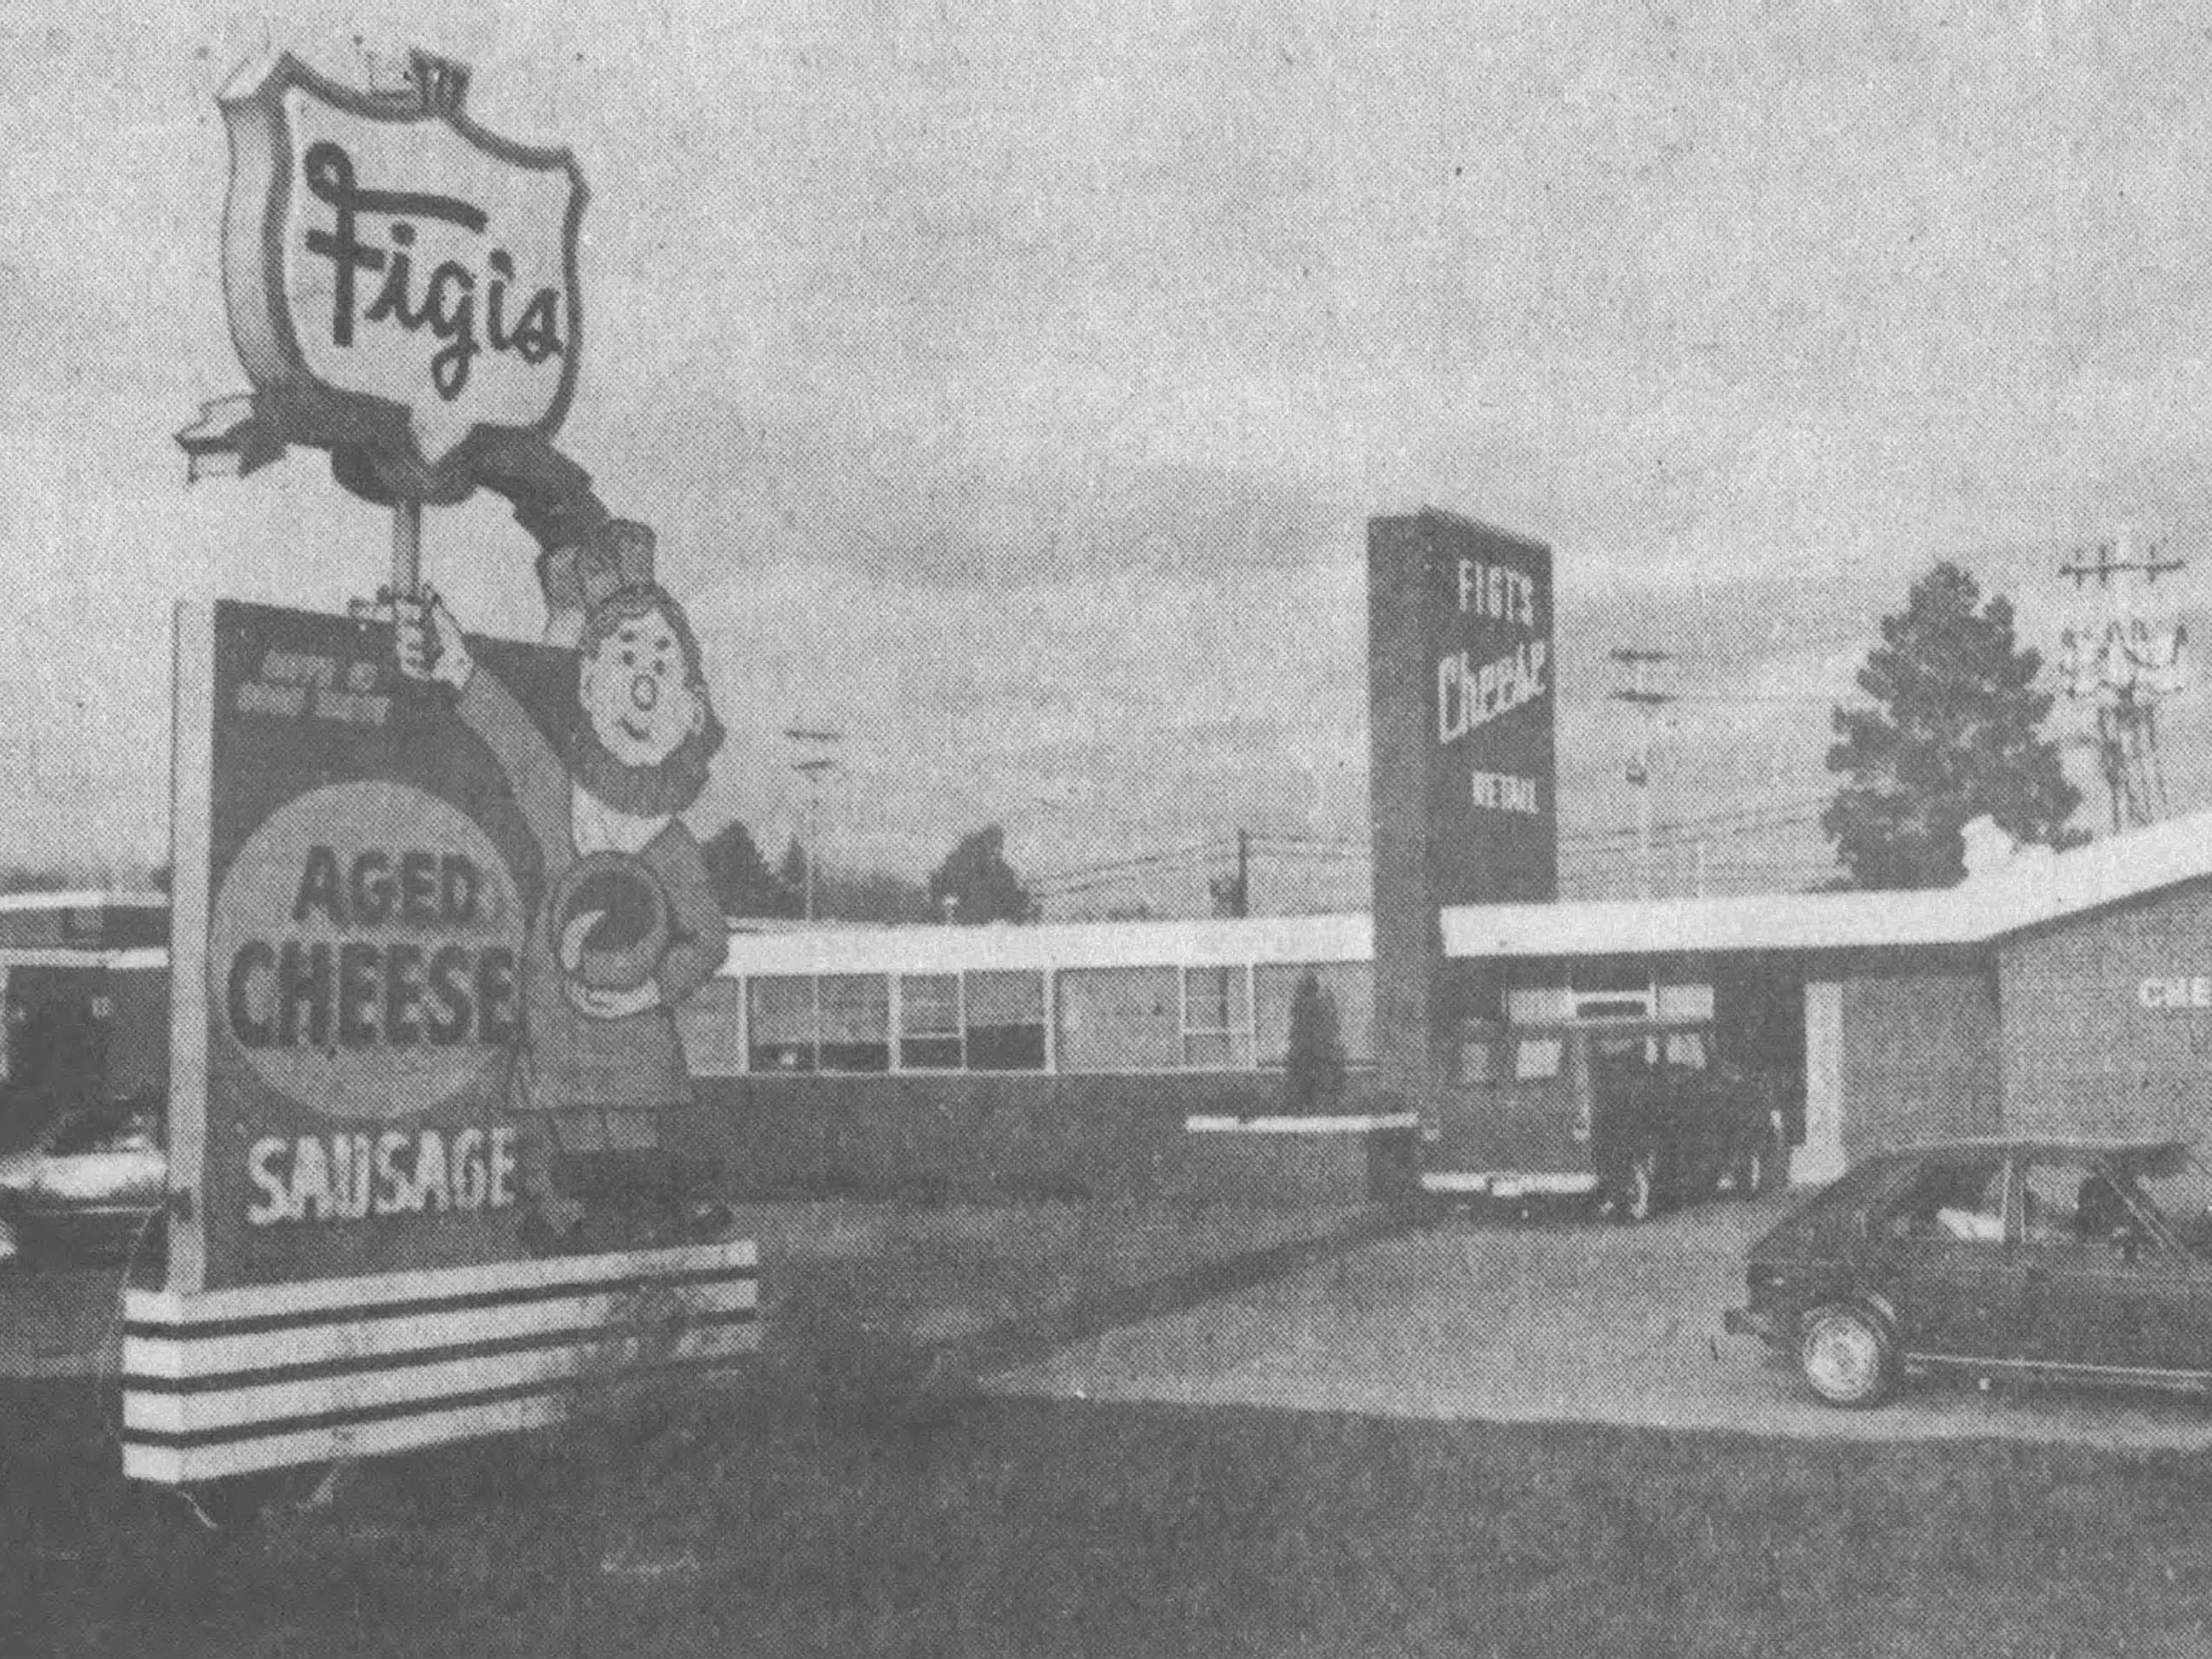 The Figi's Retail Store, 2525 S. Roddis Ave., in Marshfield, in a Nov. 8, 1986, photo.